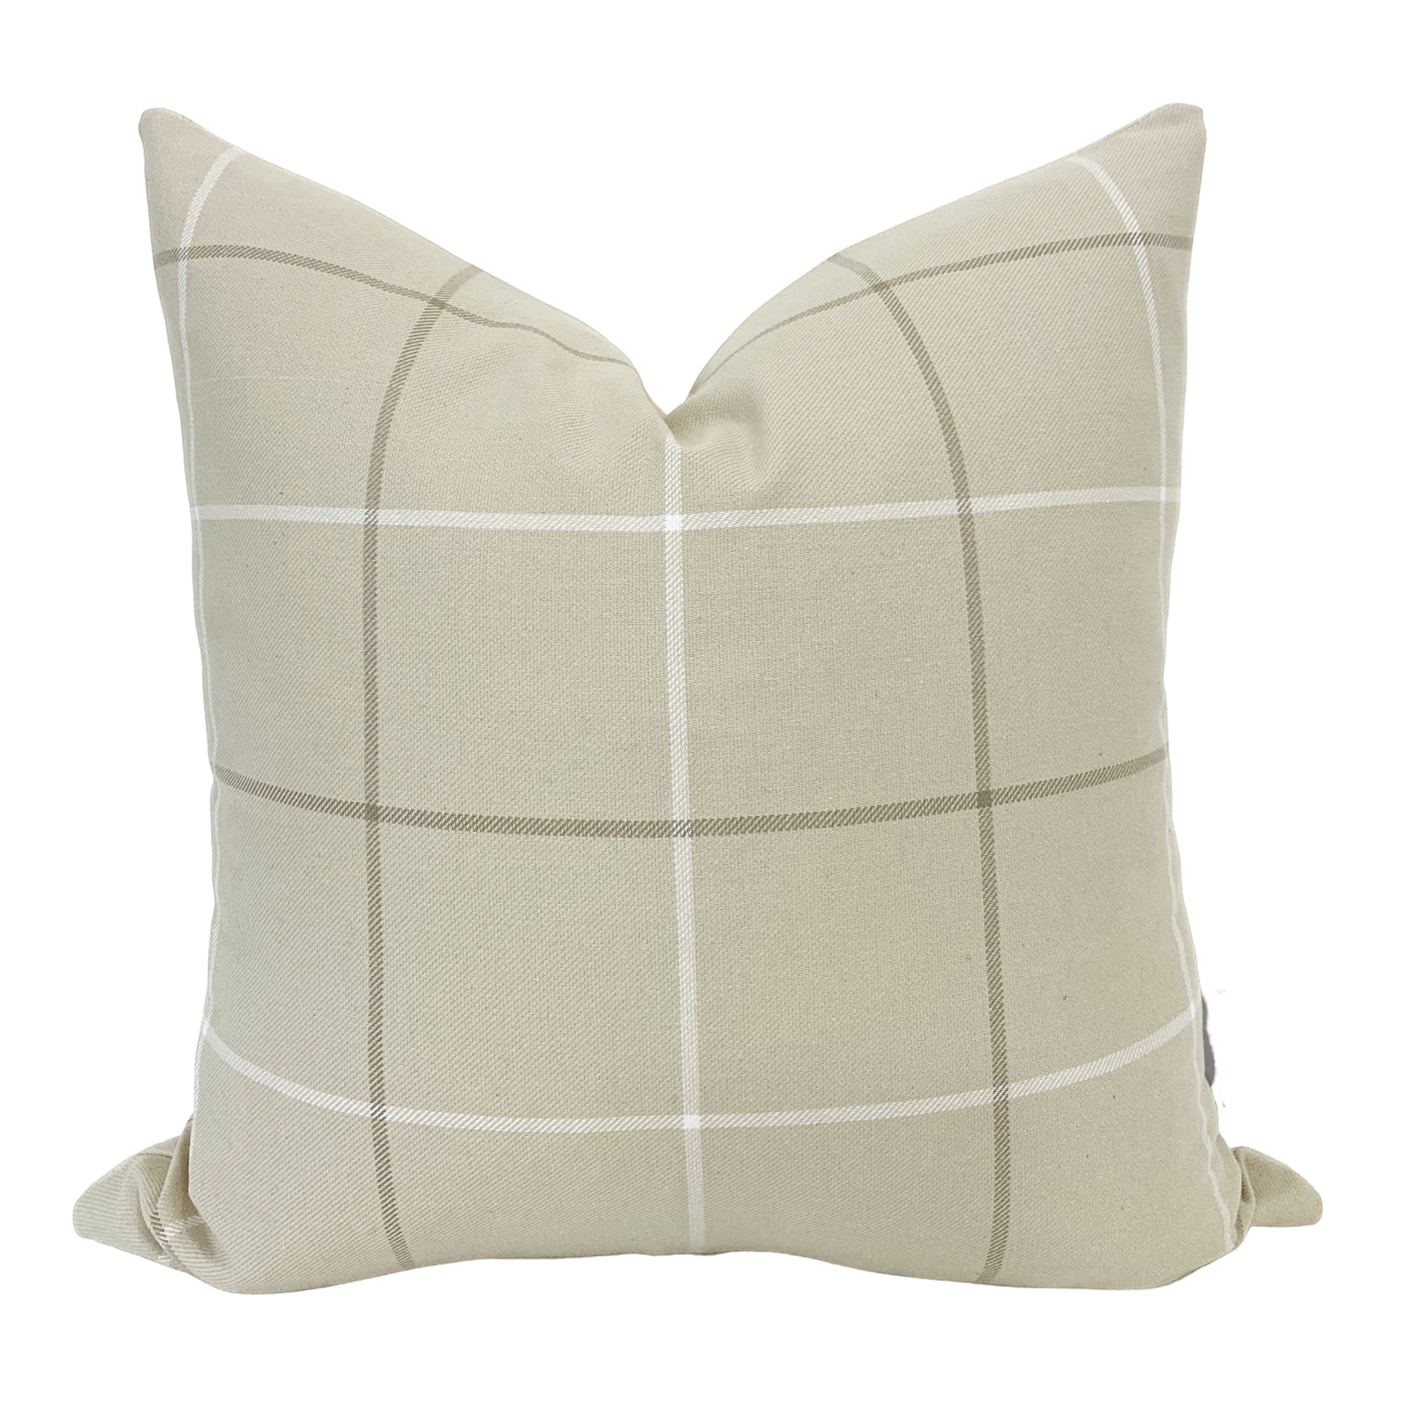 Cream Pillow, Plaid Pillow, Neutral Pillow, Farmhouse Pillow, Decorative Pillow Cover, Cream Plaid Pillow, Windowpane Pillow Cover, Linen Pillow, Hackner Home, Designer Pillows, Fall Pillows, Fall Decor